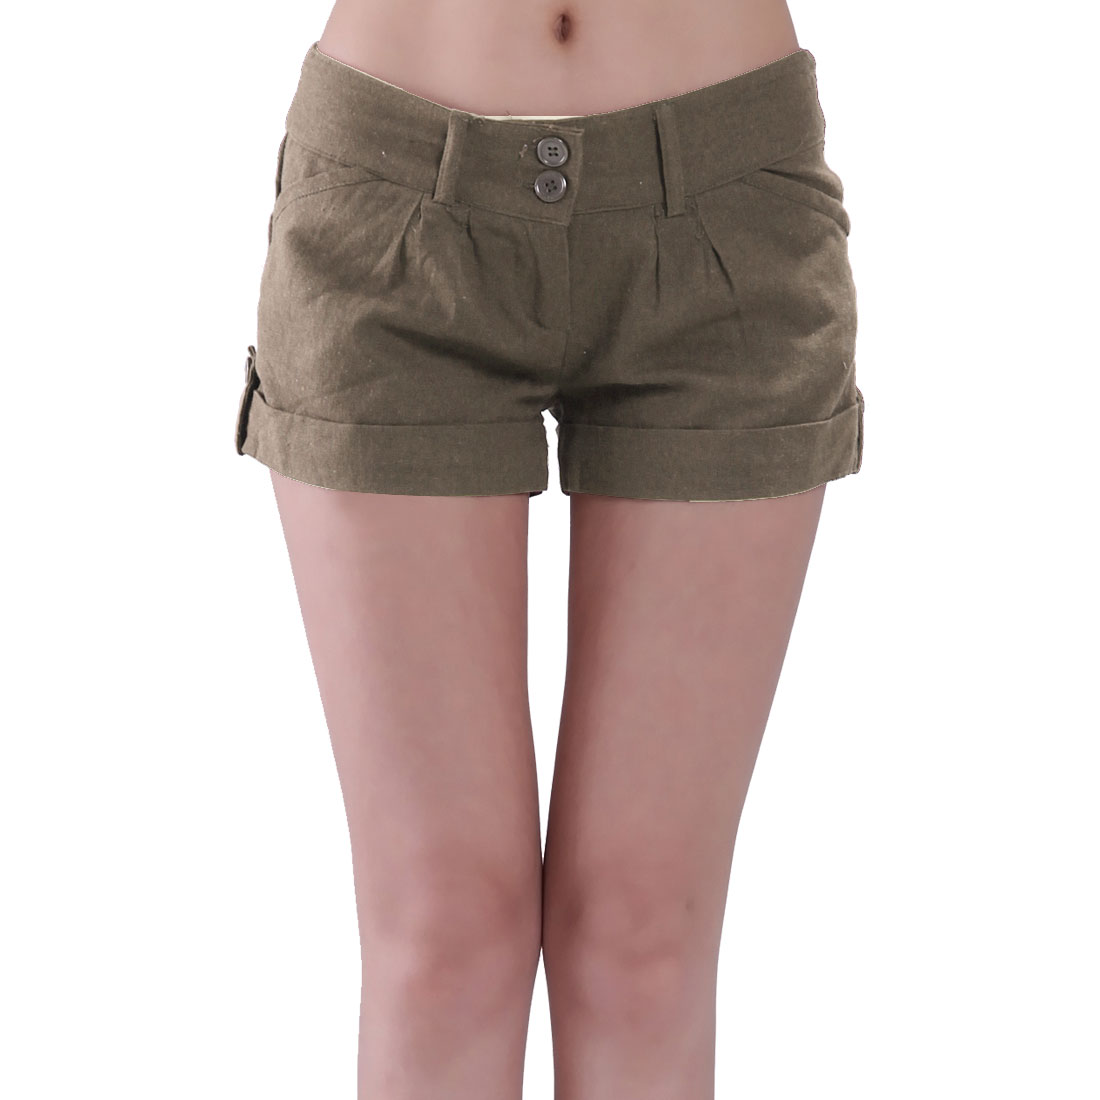 Summer Leisure Brown Low Waist Zippered Short Pants XXL for Women